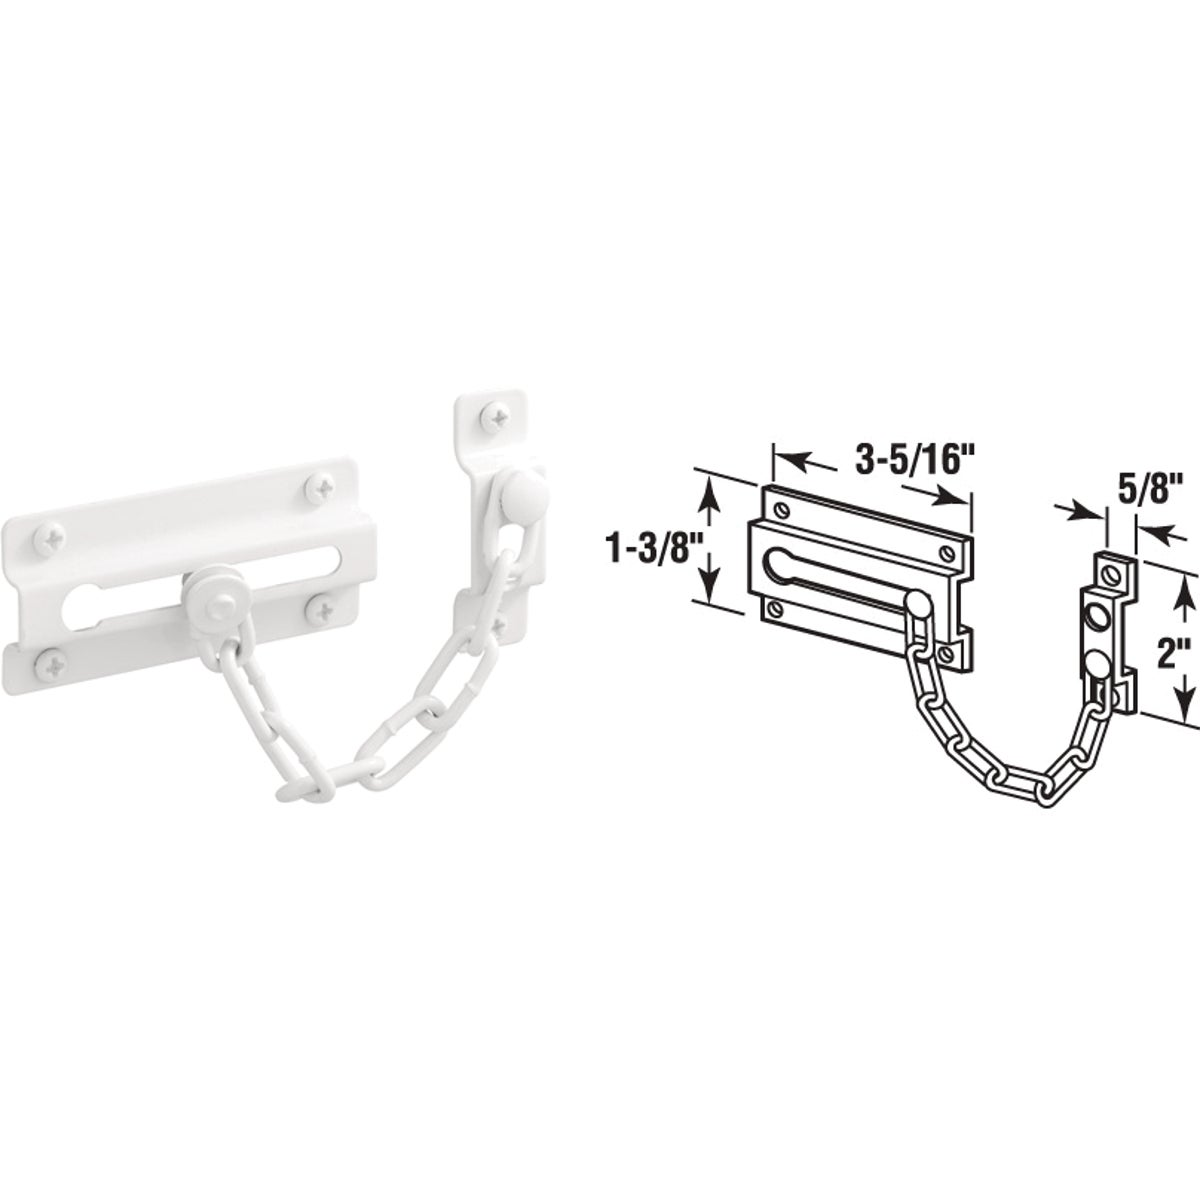 WHT CHAIN DOOR LOCK - U 9852 by Prime Line Products